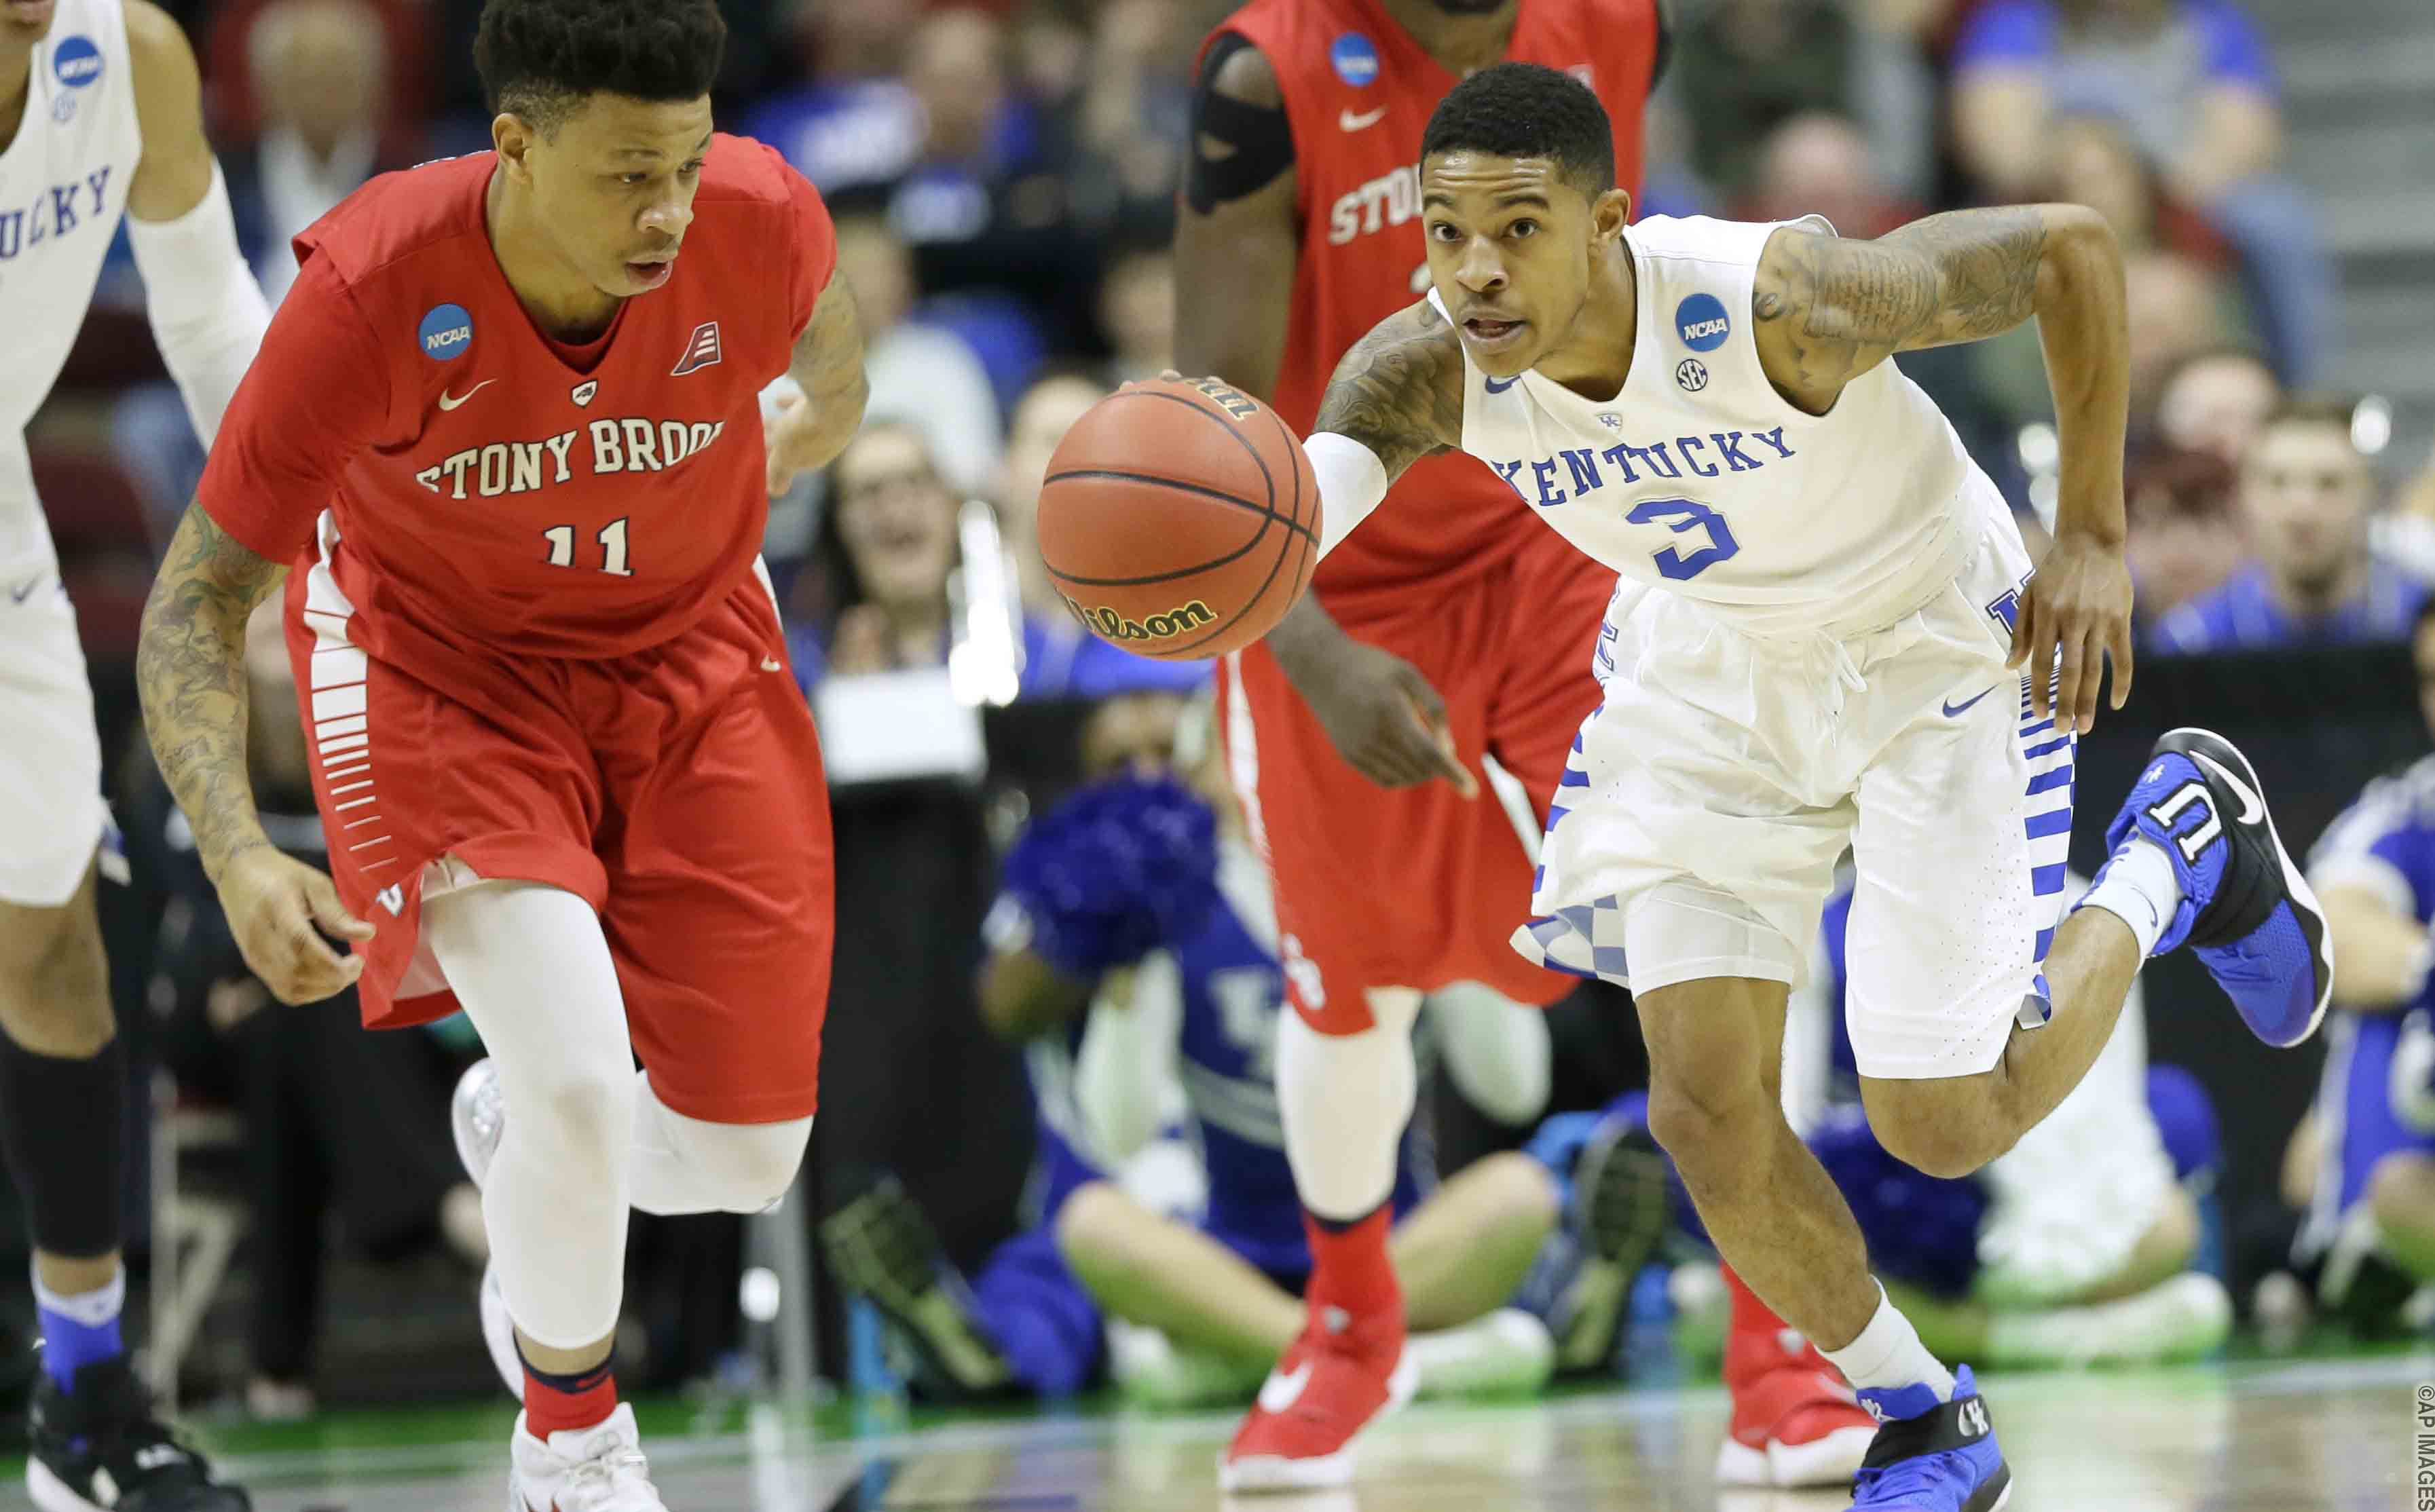 Kentucky guard Tyler Ulis drives upcourt past Stony Brook forward Rayshaun McGrew, left, during the first half of a first-round men's college basketball game in the NCAA Tournament, Thursday, March 17, 2016, in Des Moines, Iowa. (AP Photo/Charlie Neibergall)